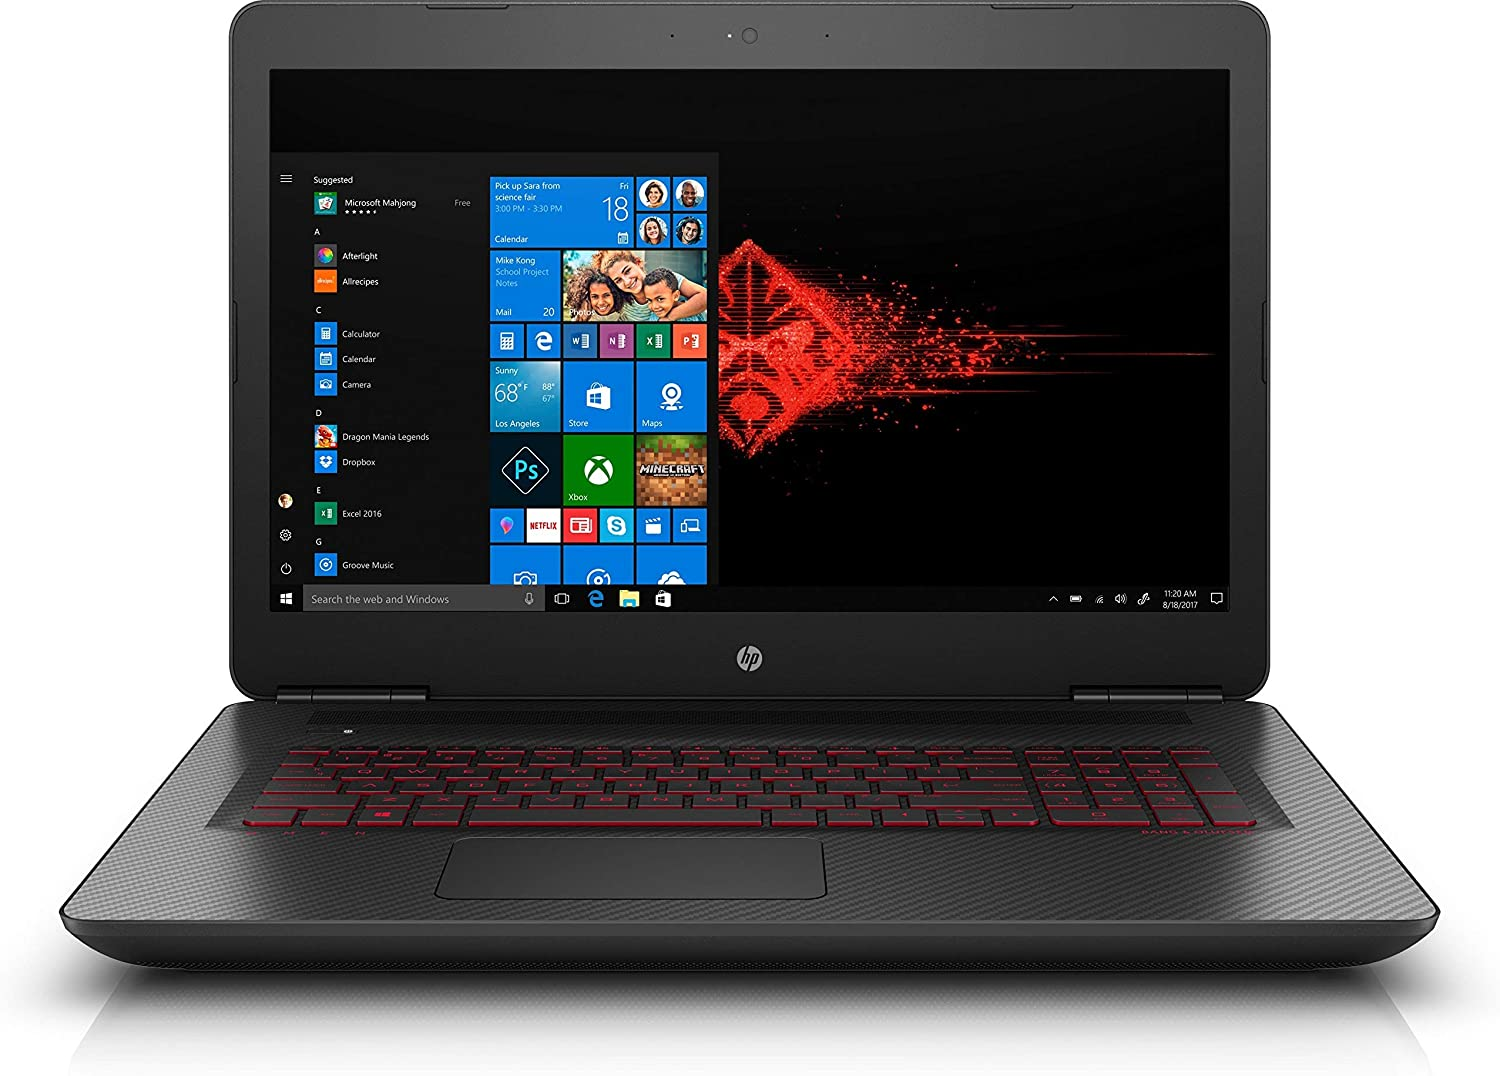 HP OMEN LAPTOP 17-W295MS (i7-7700HQ, 1TB HDD + 256GB SSD, 16GB RAM, GTX 1070) (Renewed)